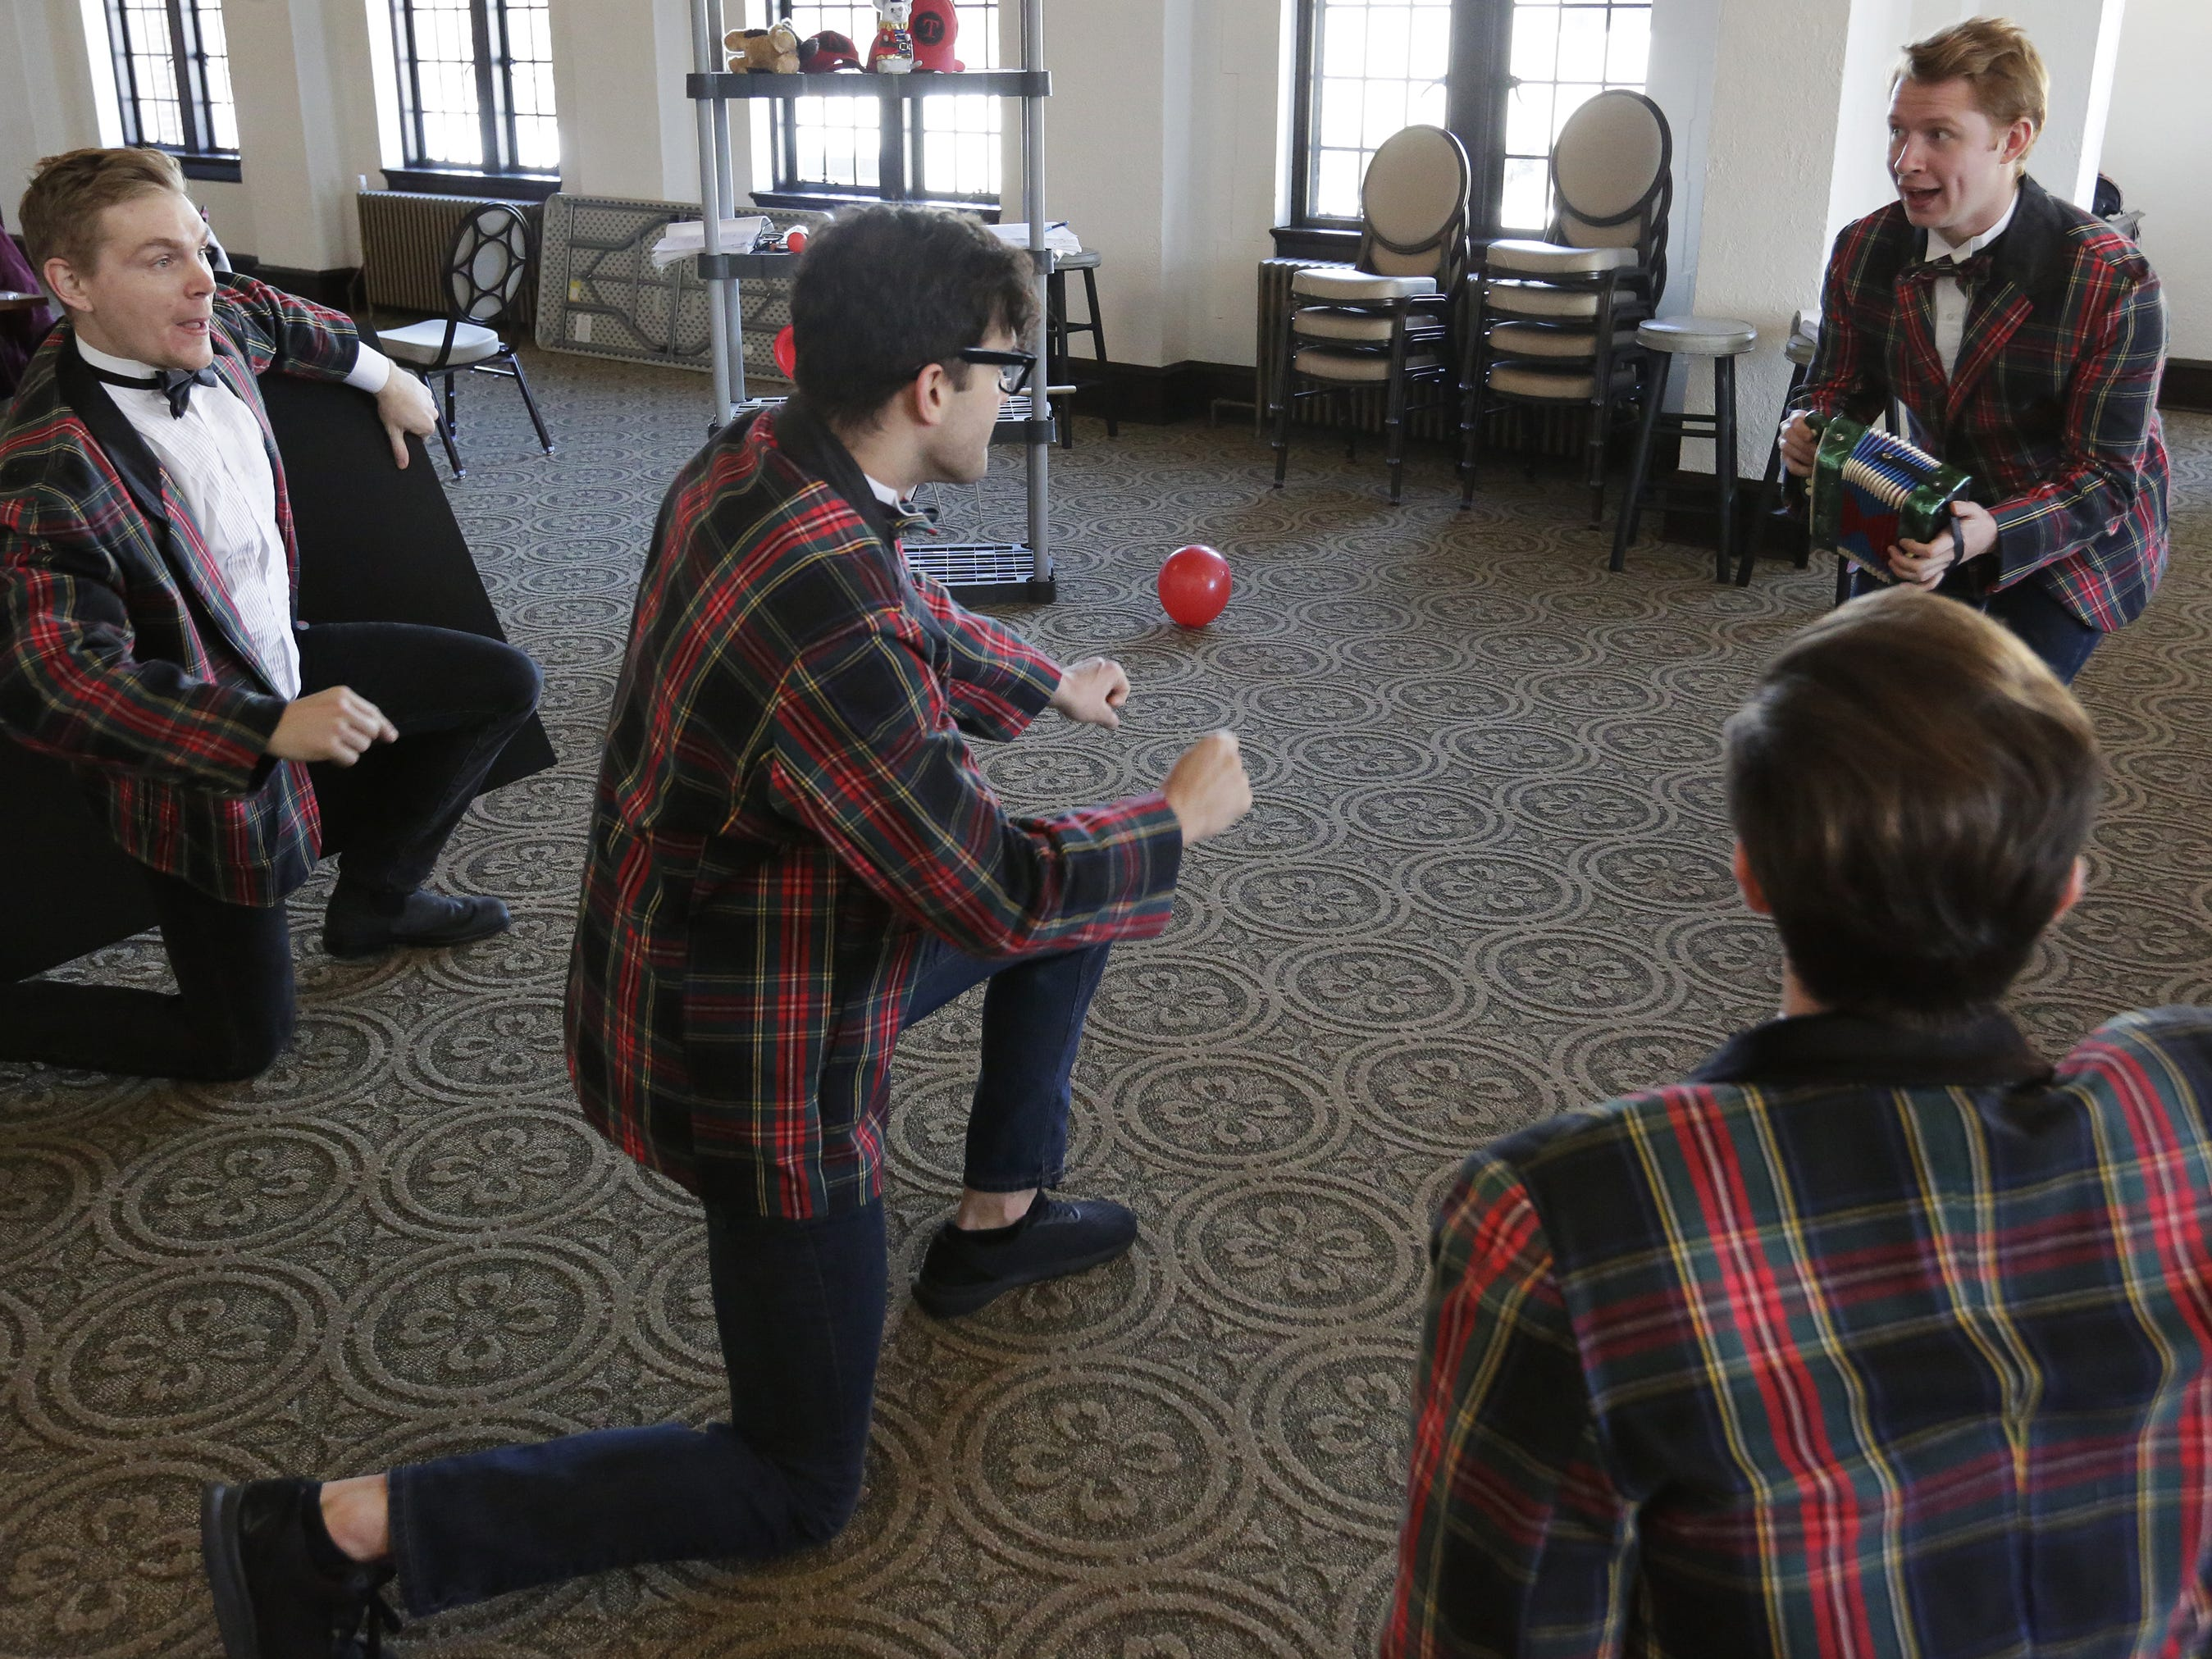 """Brian Krinsky, Bryce Dutton, Carver Duncan and Gabe Ford-Dunker rehearse Thursday, Dec. 6, 2018, for the dinner theater presentation """"Forever Plaid: Plaid Tidings,"""" which opens Dec. 13, 2018, at The Howard in Oshkosh."""